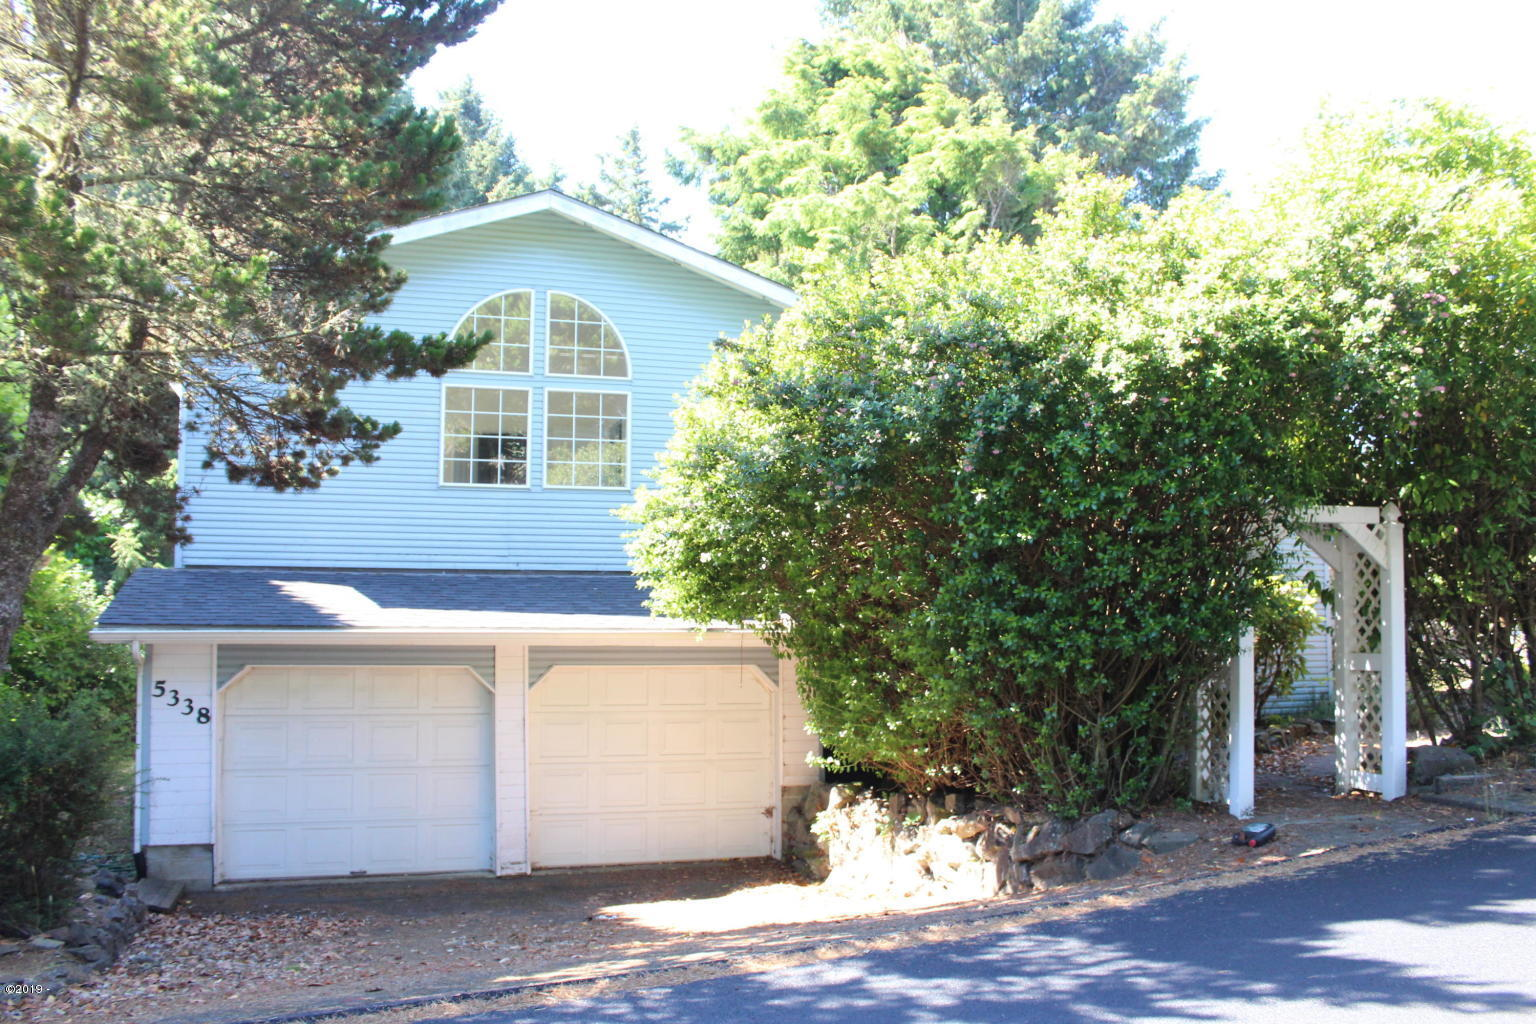 5338 NE Port Ln, Lincoln City, OR 97367 - 3 Bedrooms 2.5 Baths